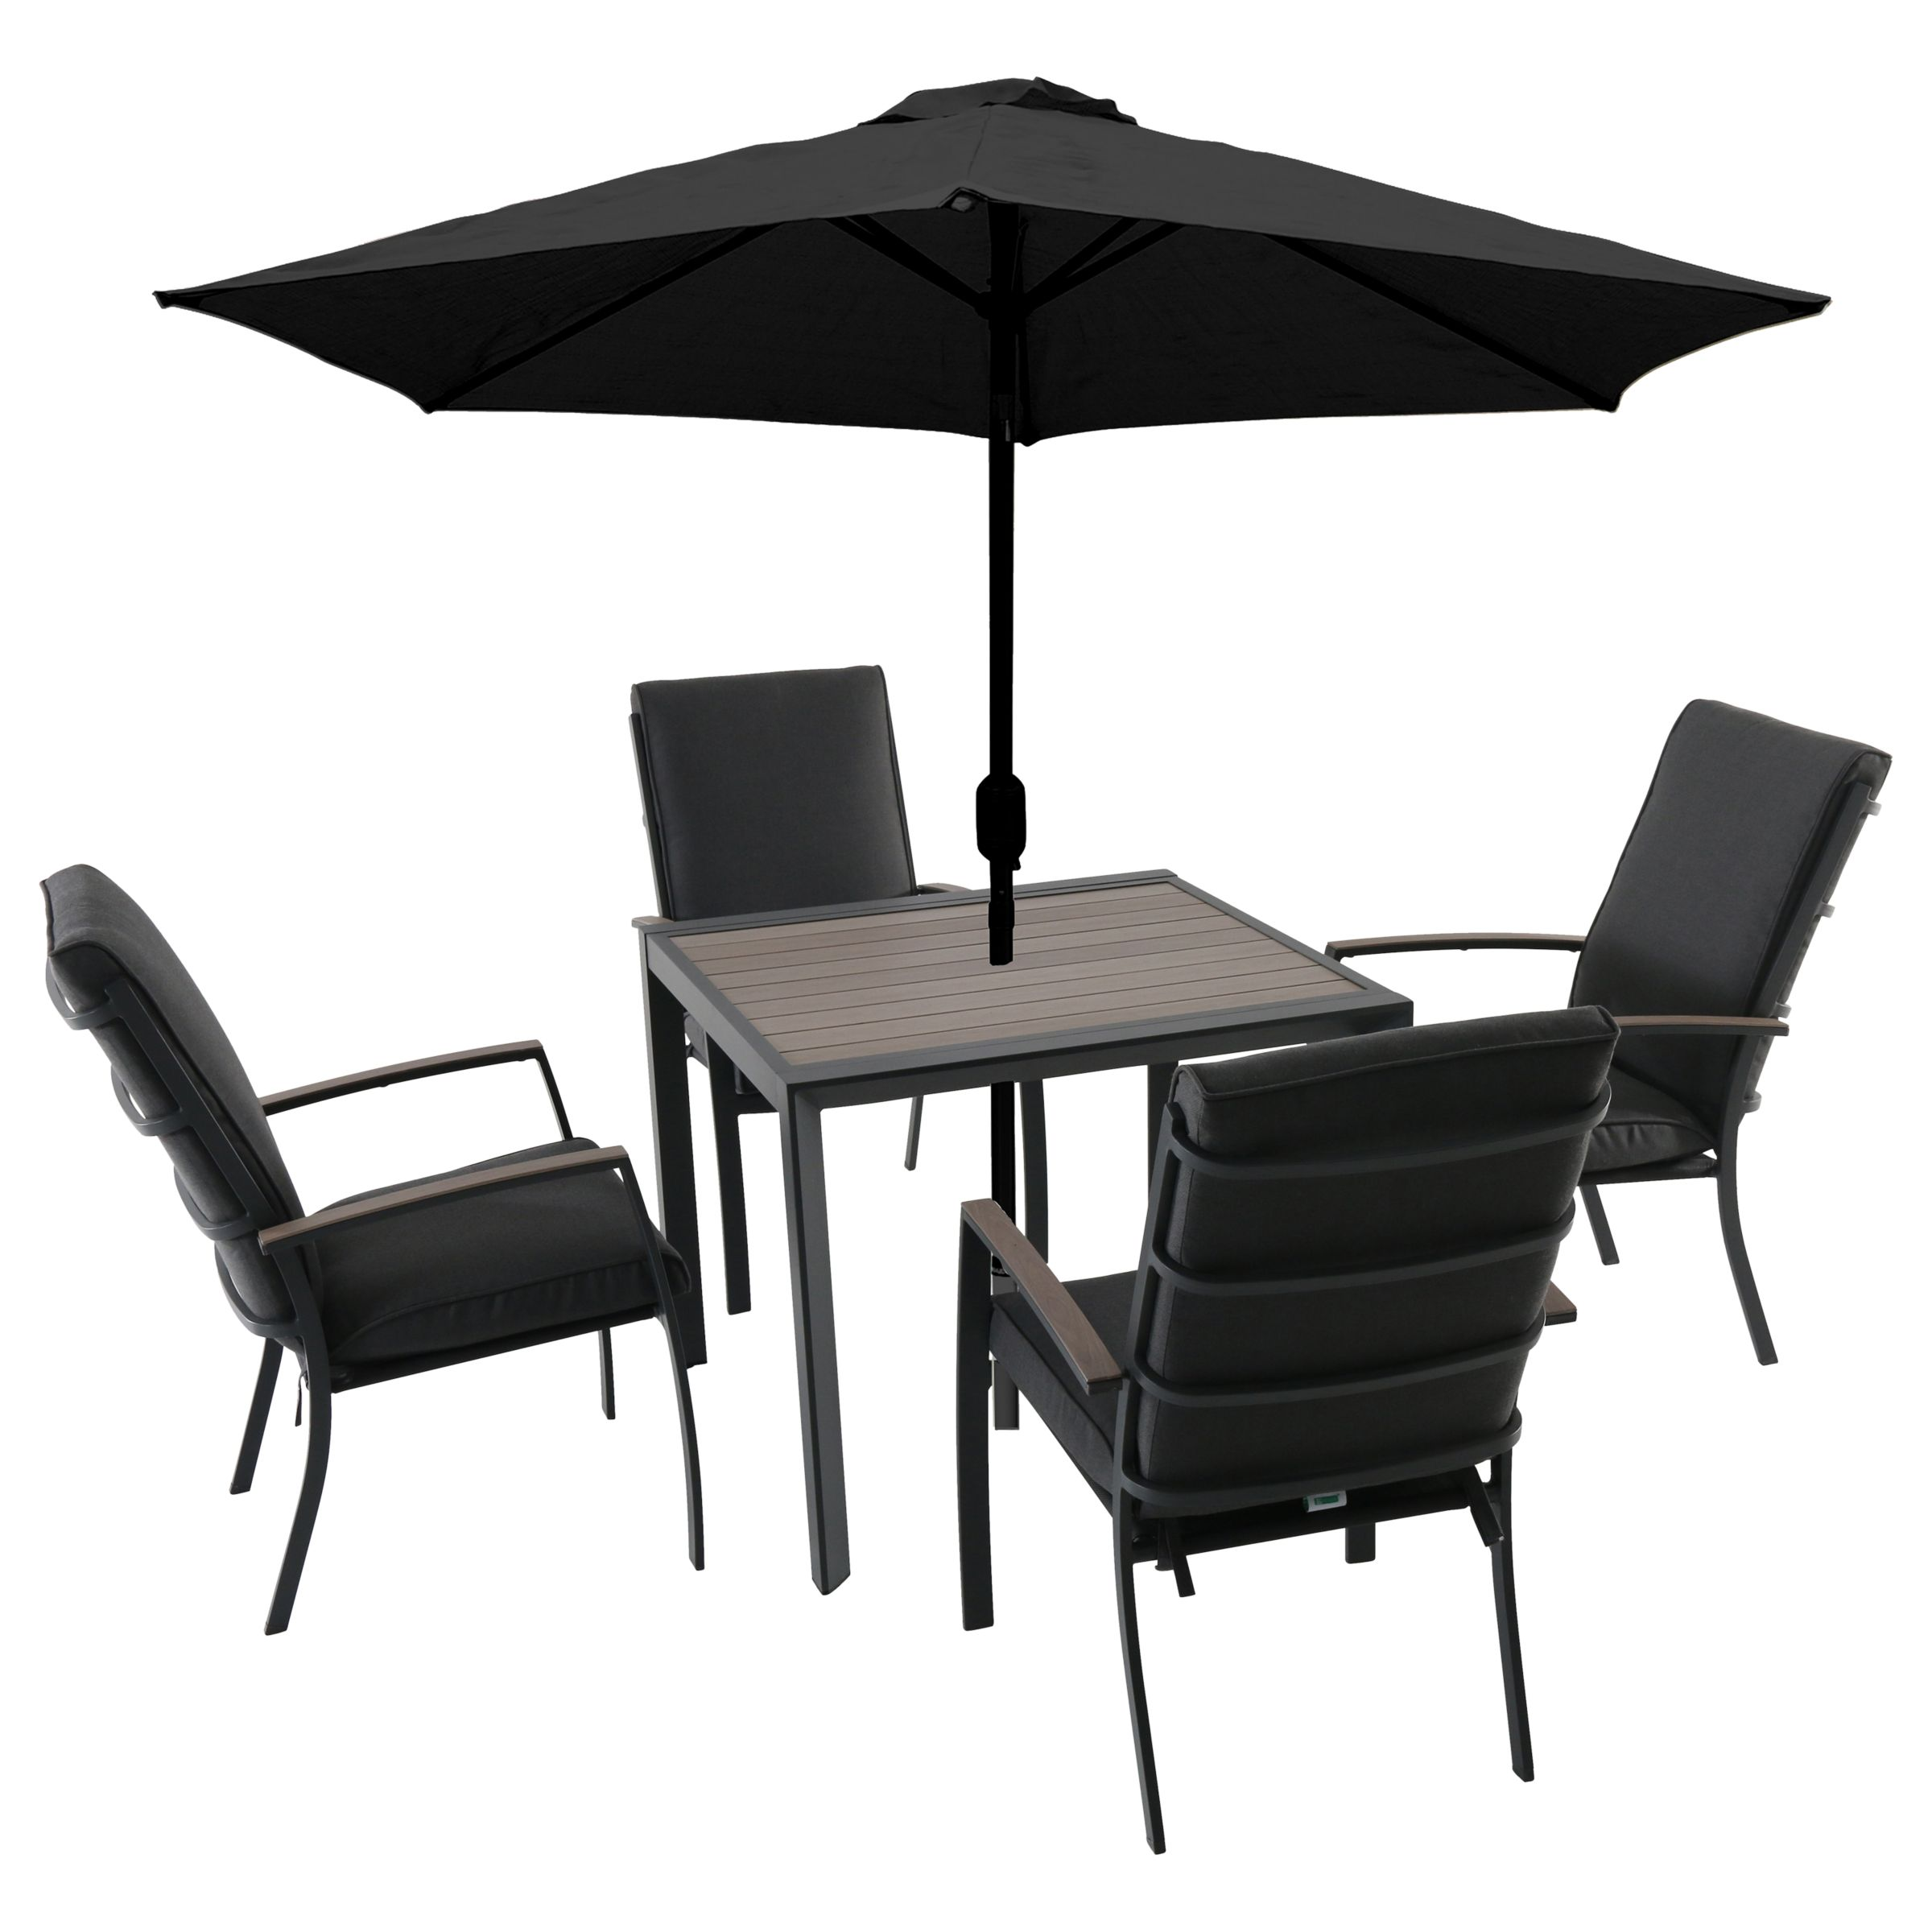 Outdoor Table And Chair Set Lg Outdoor Milan 4 Seater Garden Dining Table Chairs Set With